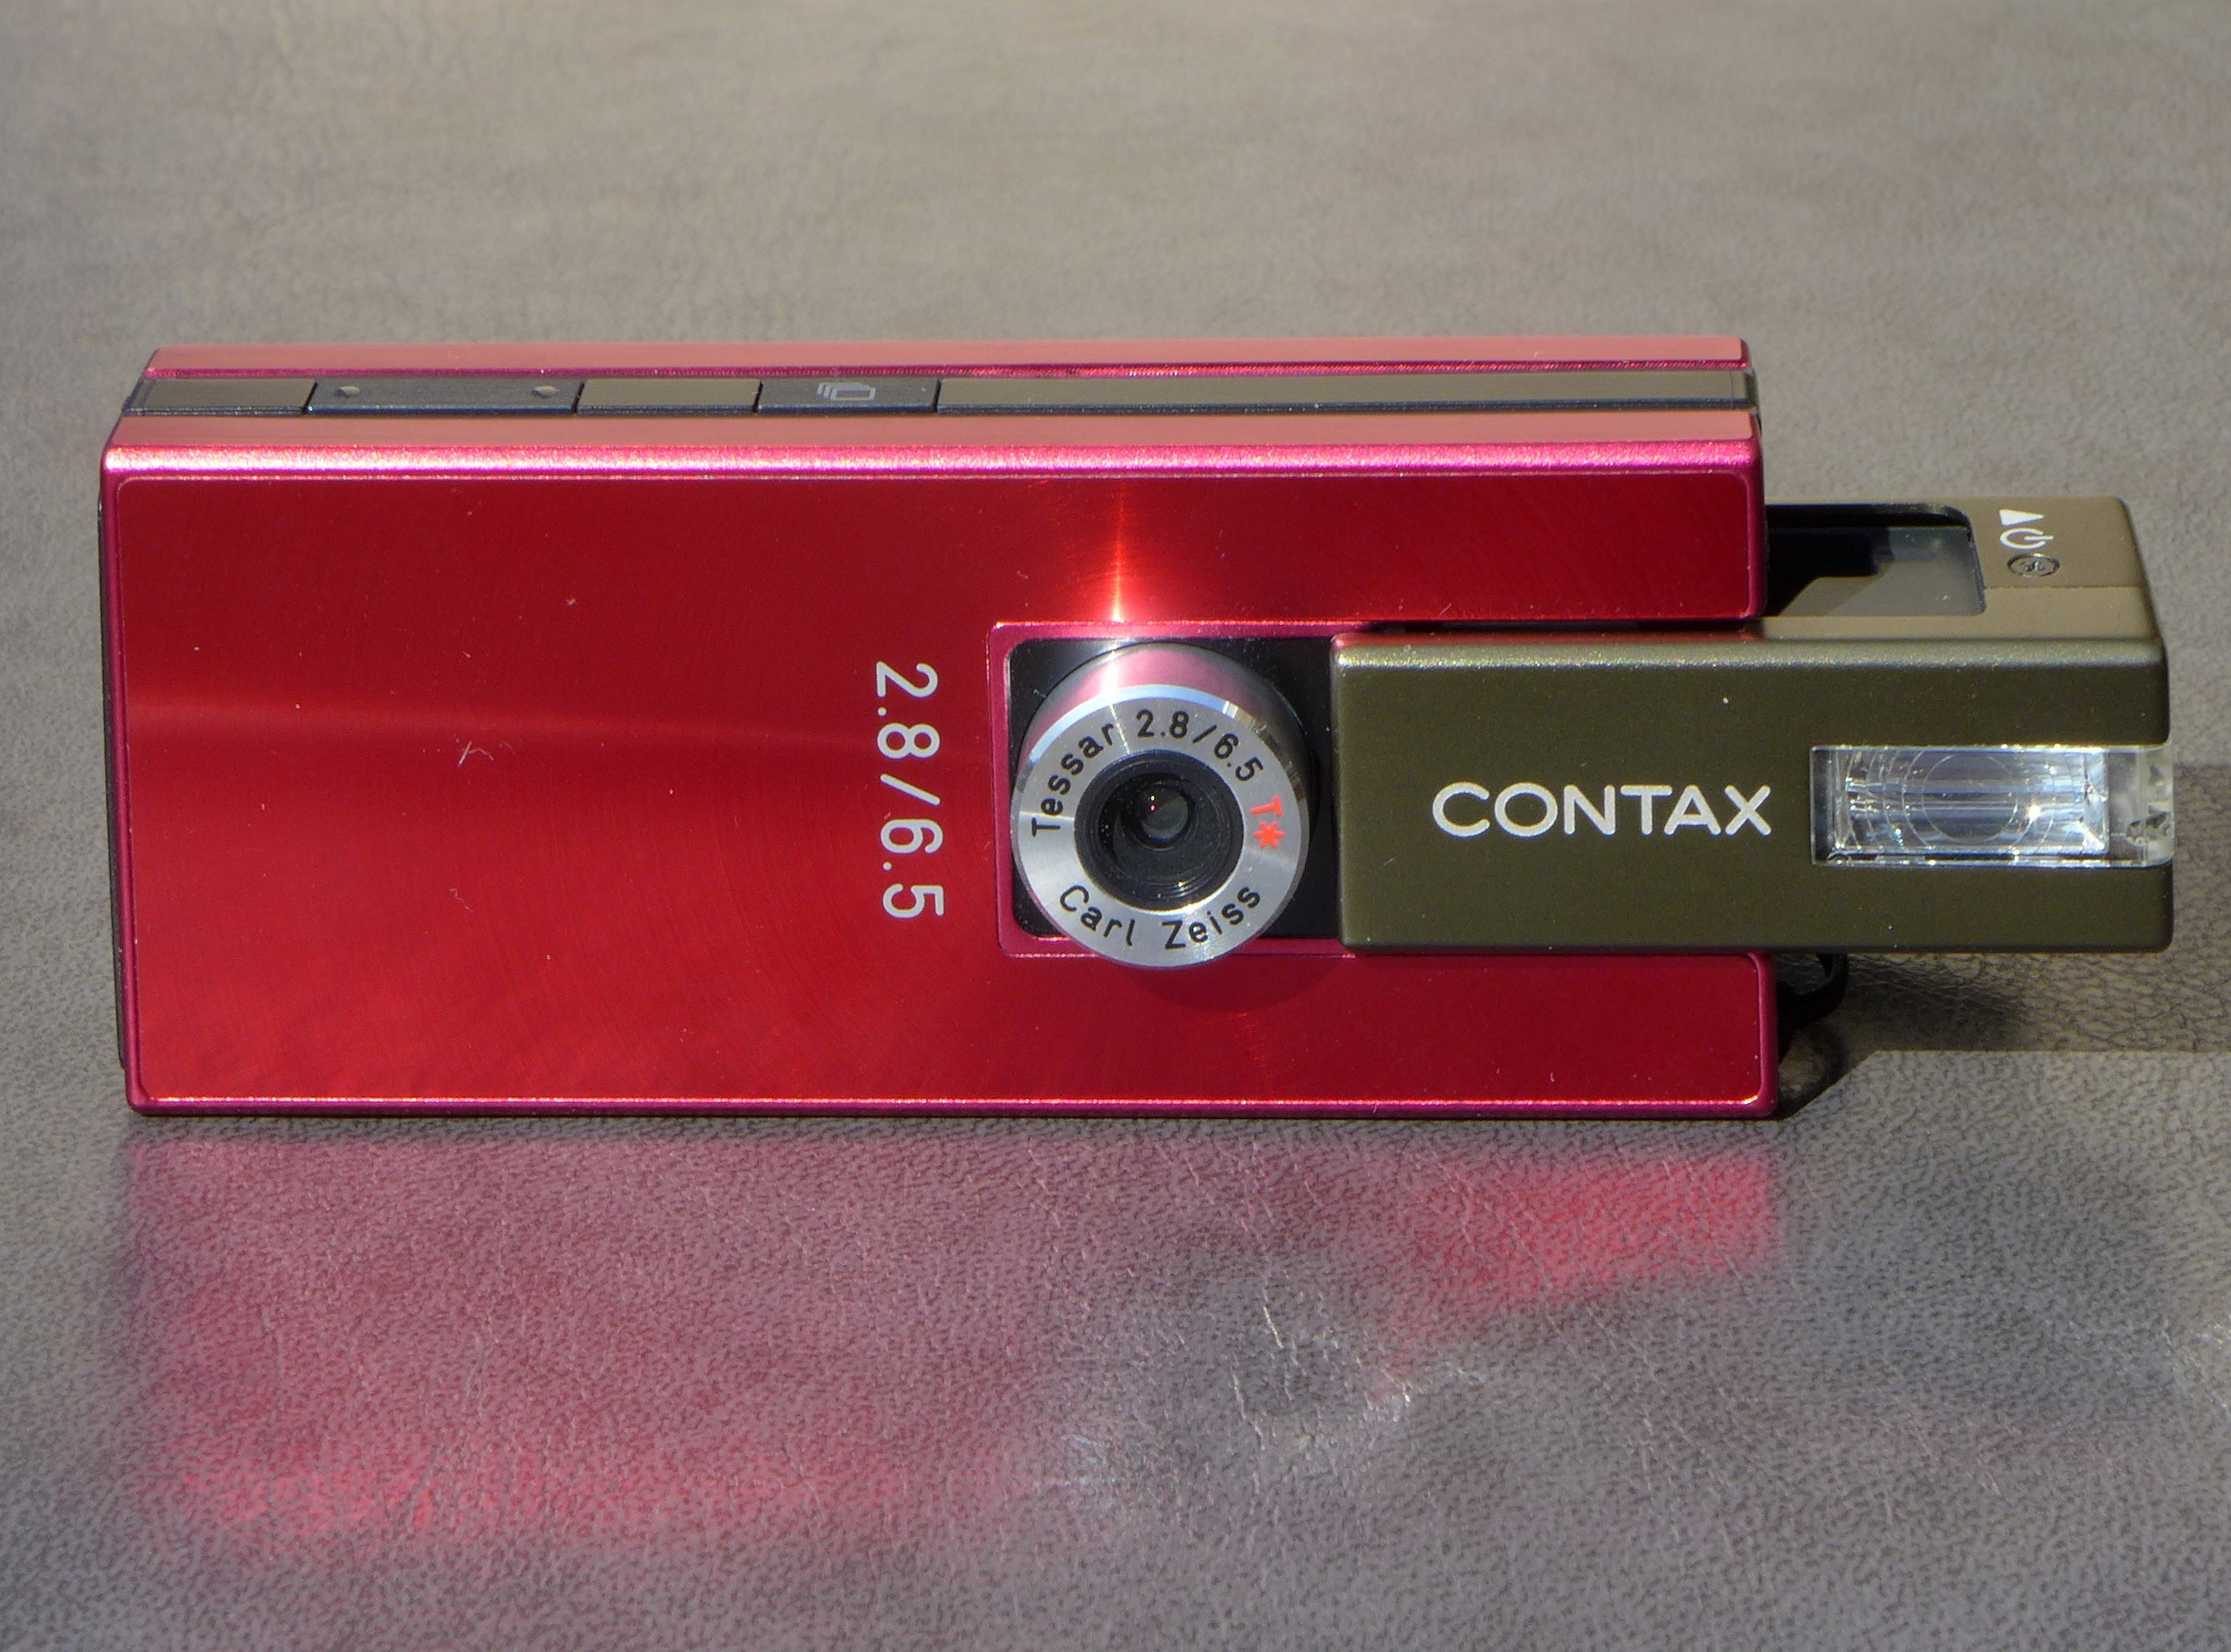 CONTAX I4R WINDOWS DRIVER DOWNLOAD